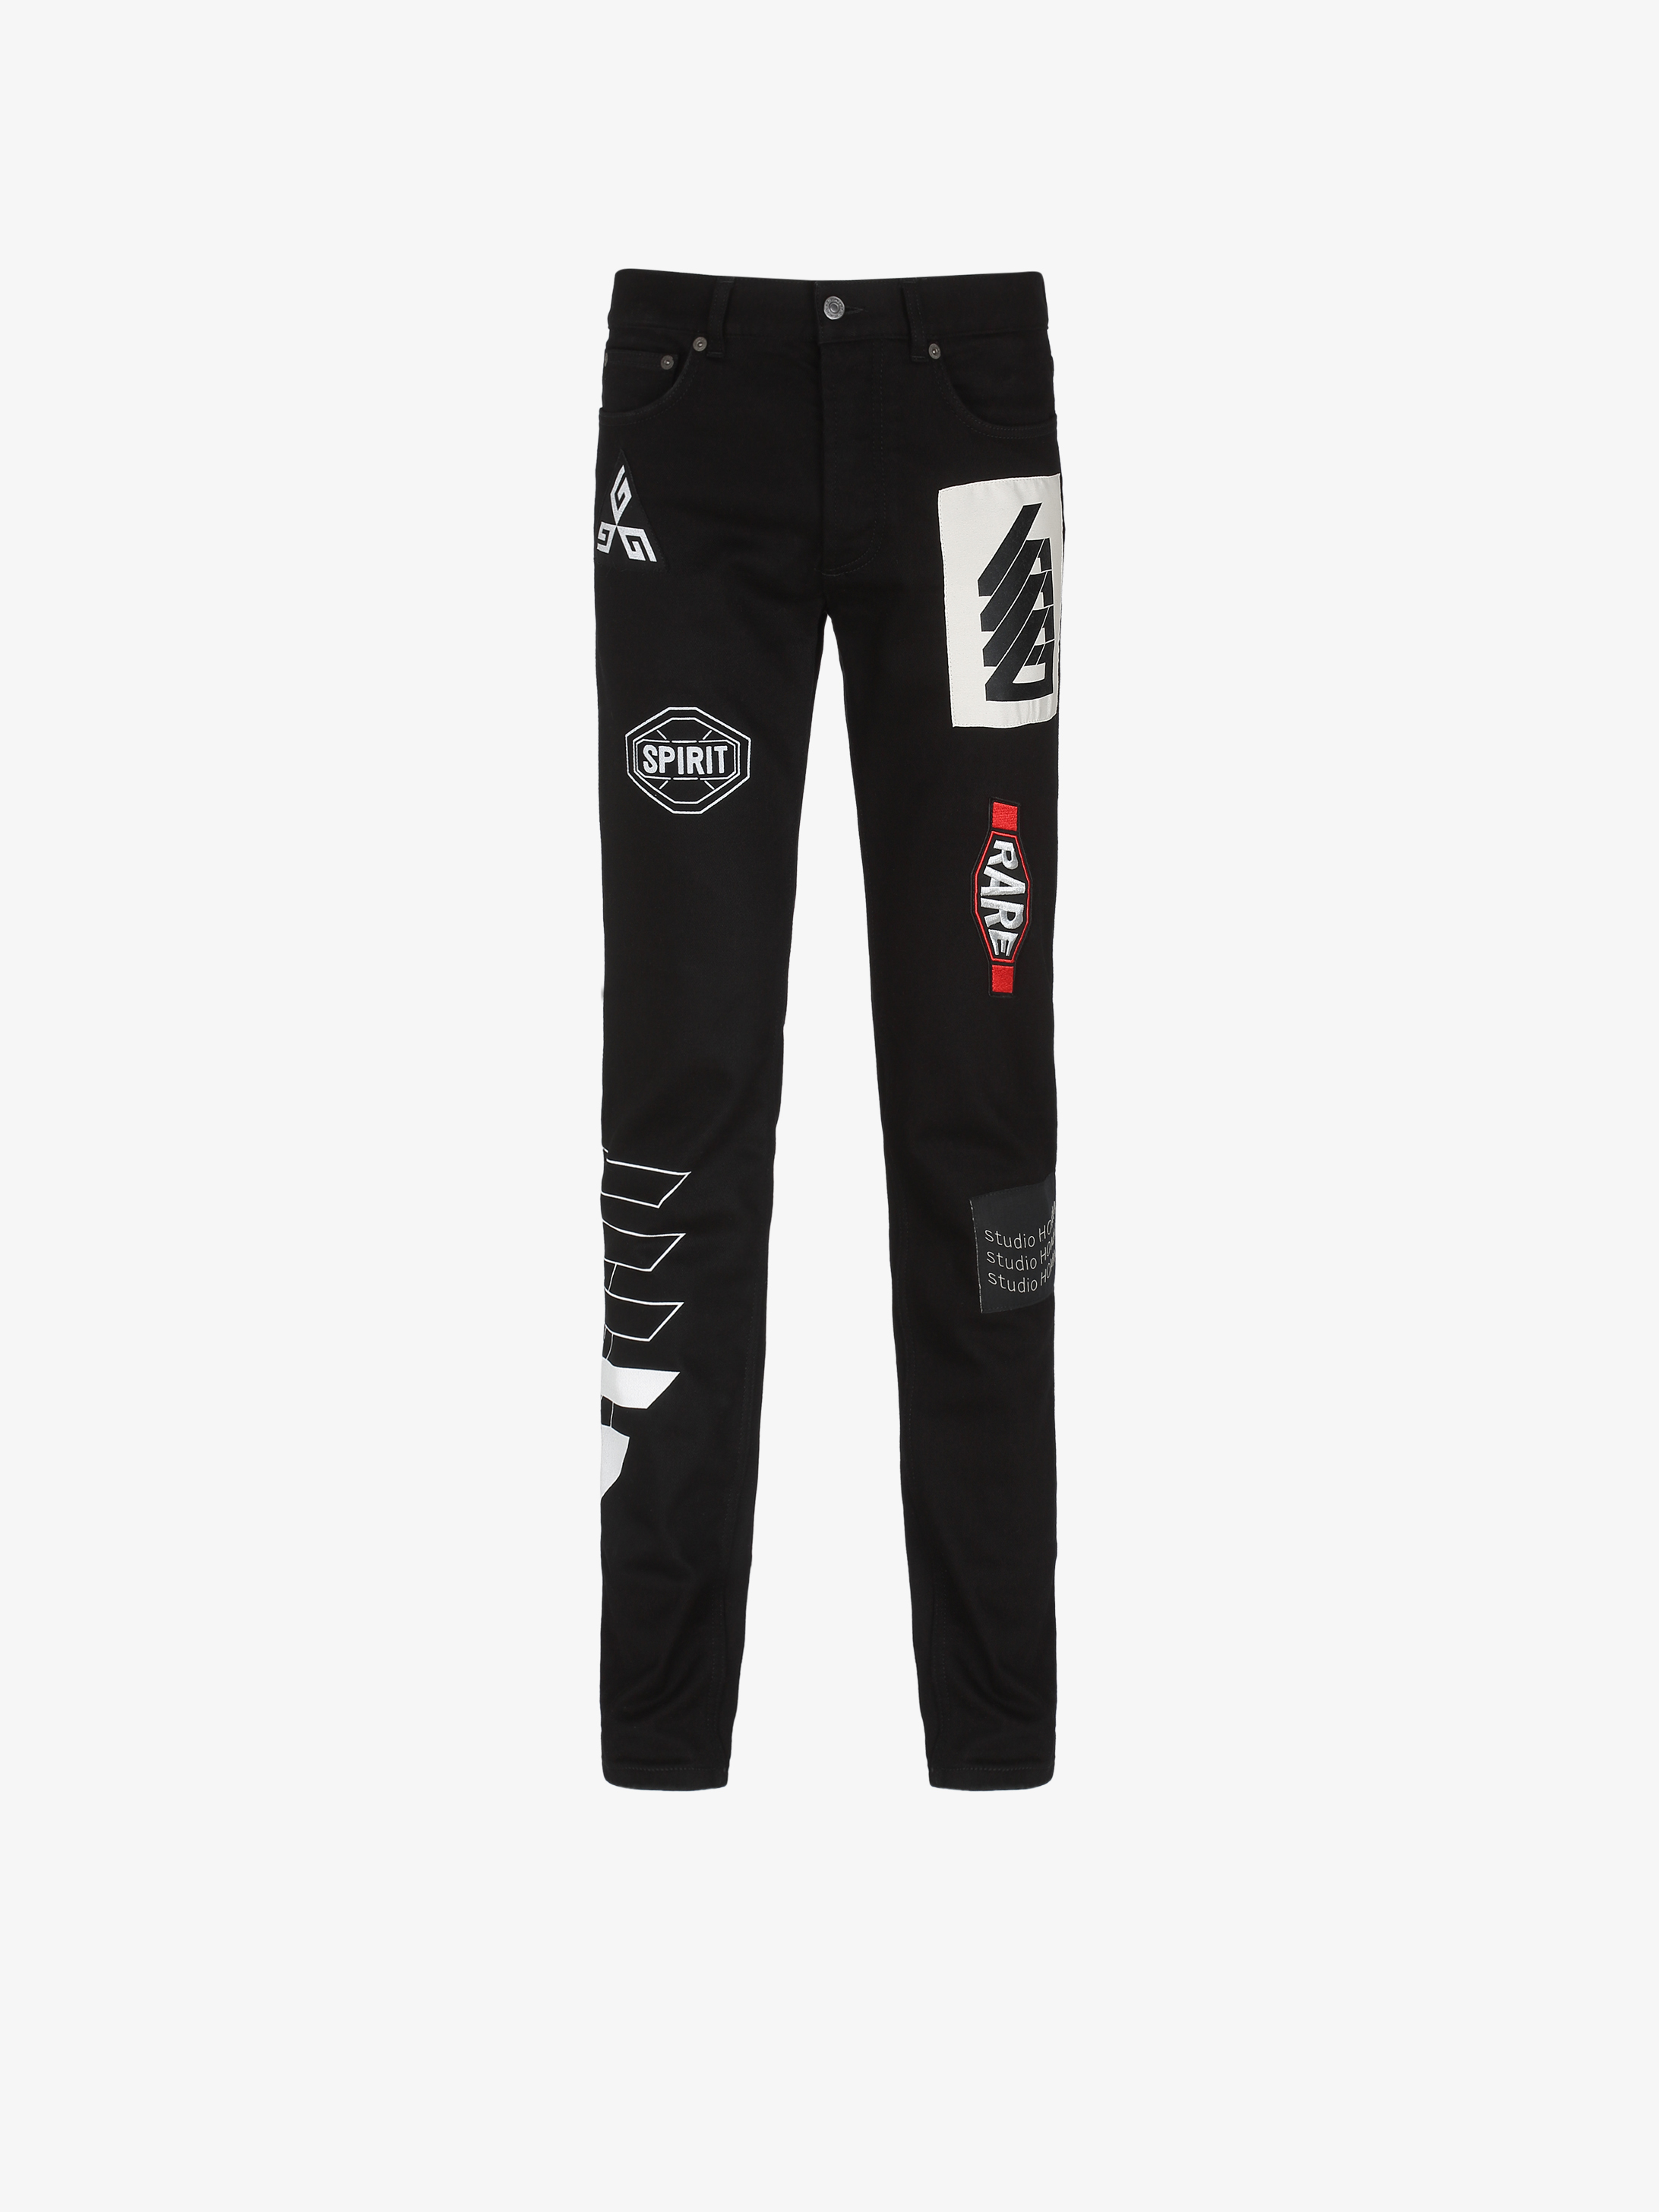 GIVENCHY printed slim fit jeans with patchs